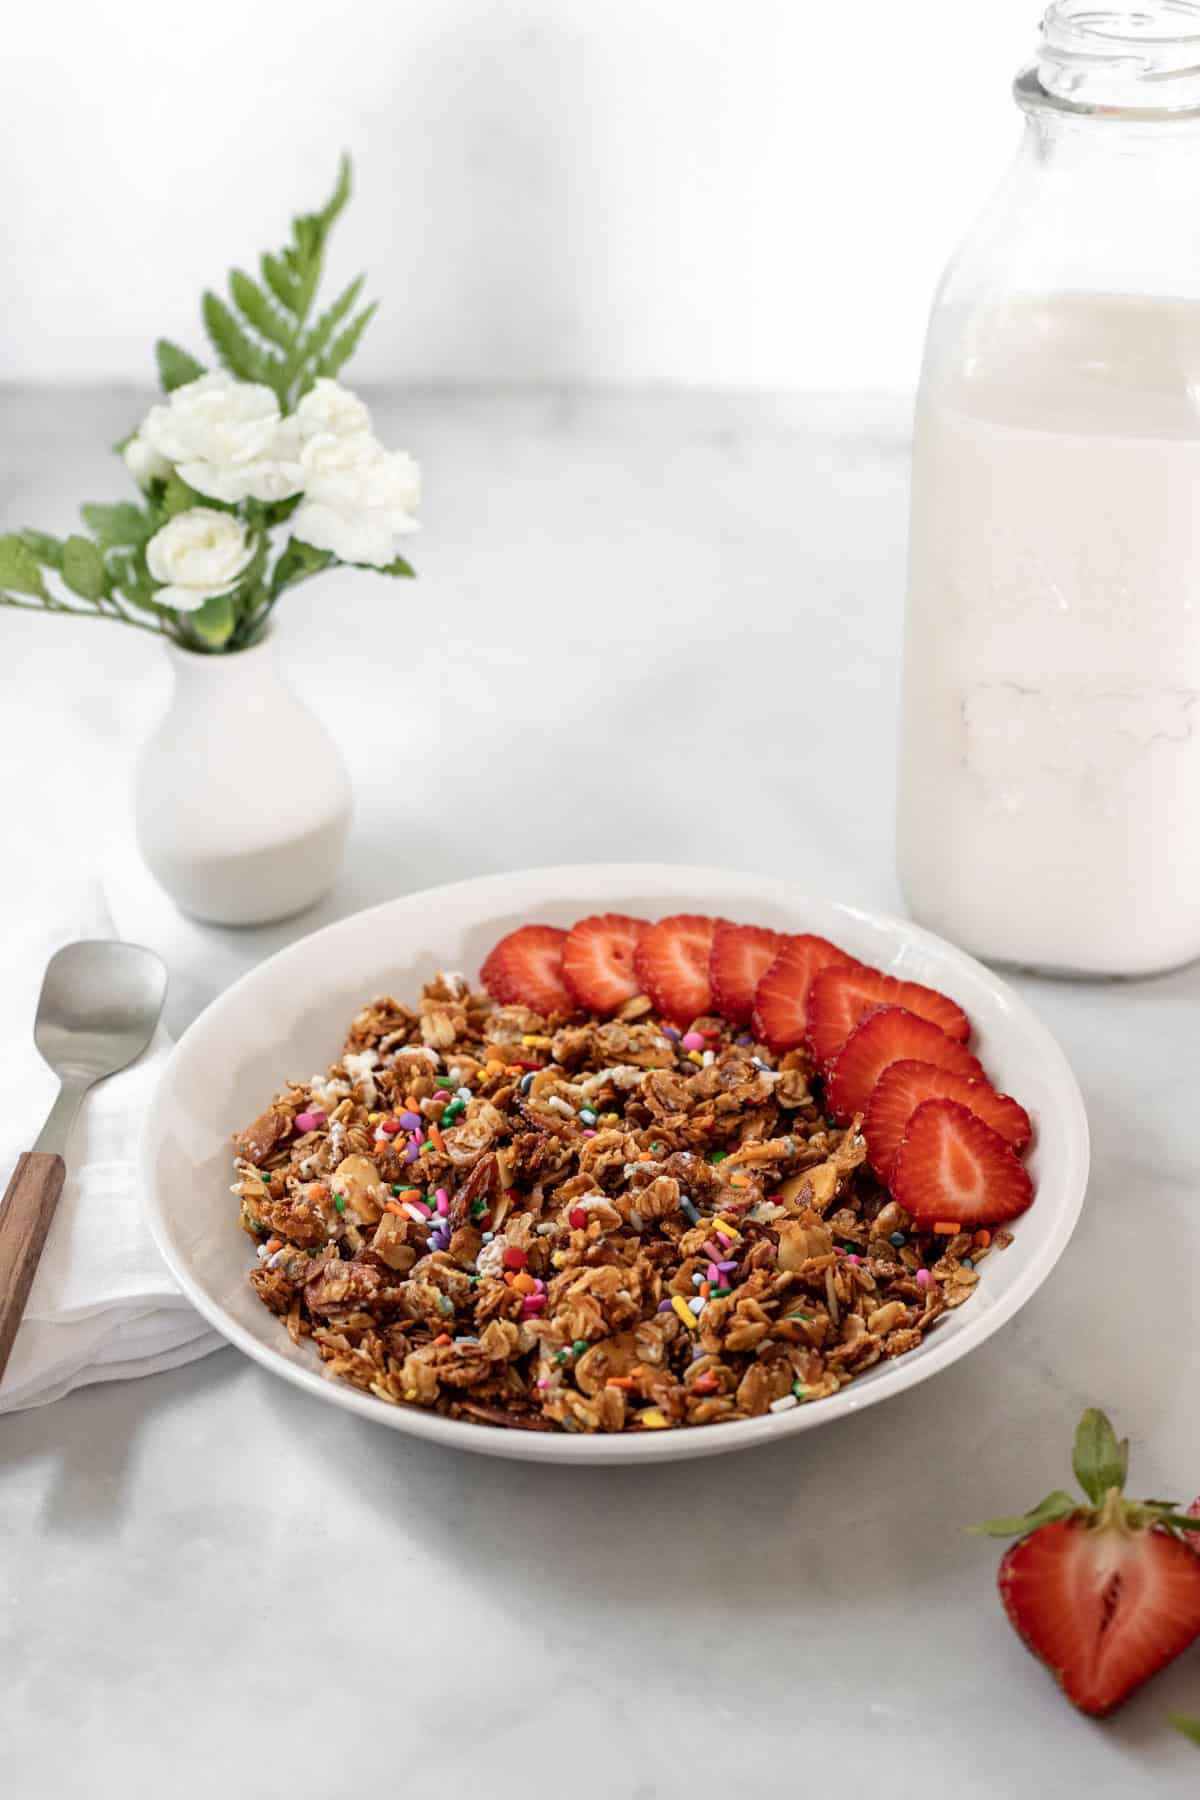 A bowl of vanilla almond granola with strawberries on top and a spoon, napkin, vase with white flowers, and jar of milk around it.